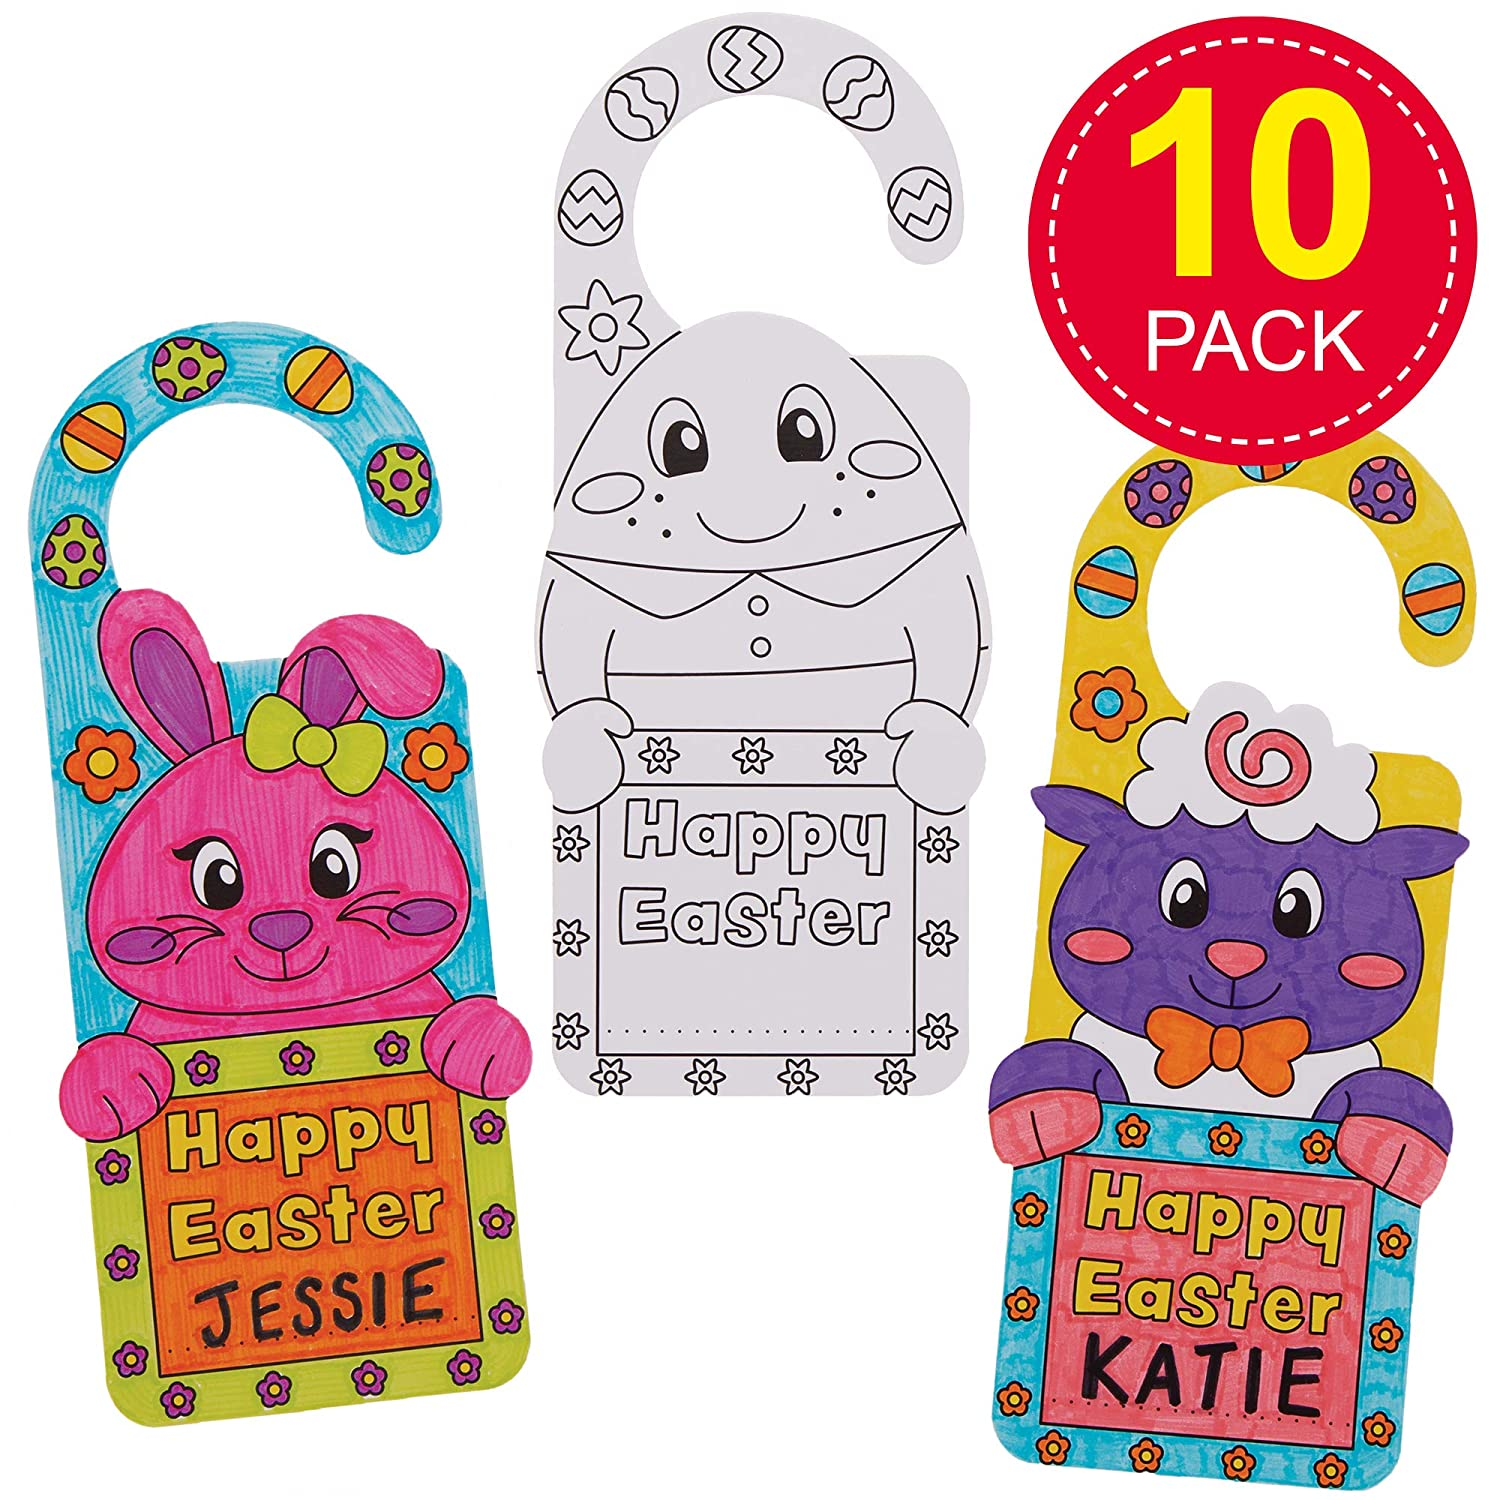 Pack of 10 Educational Toys Keepsakes Ideal for Kids Arts and Crafts Baker Ross AT508 Easter Color in Door Hangers Gifts